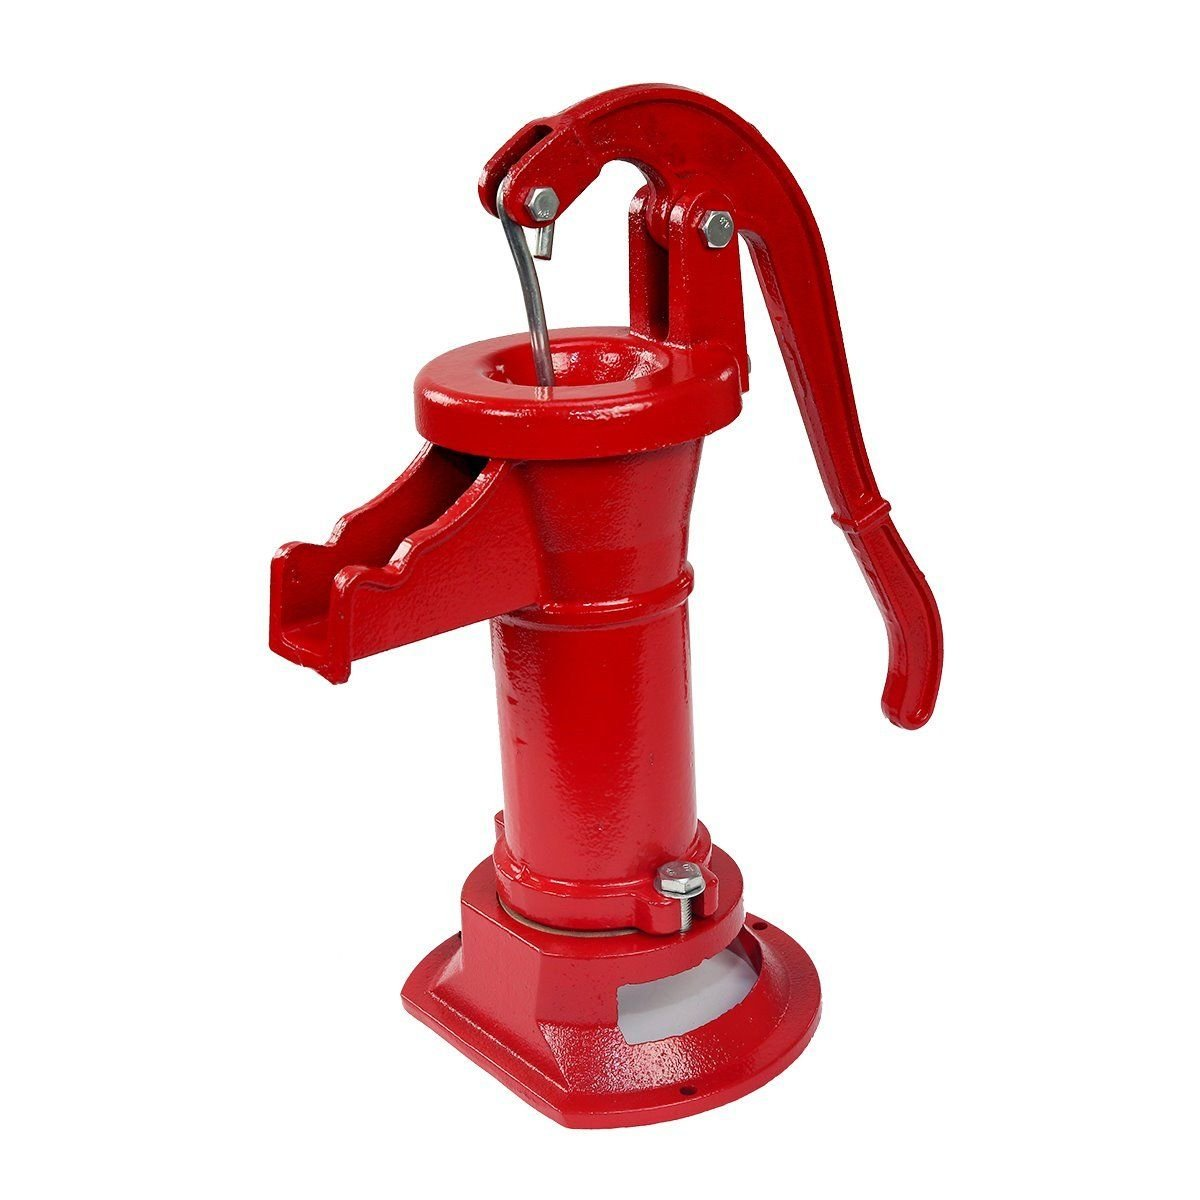 COLIBROX--New Antique Style Heavy Duty Cast Iron Red Well Hand Operated Pitcher Pump 25 Ft. Designed for rugged long life service All parts are made from close grain cast iron for optimum strength. by COLIBROX (Image #2)